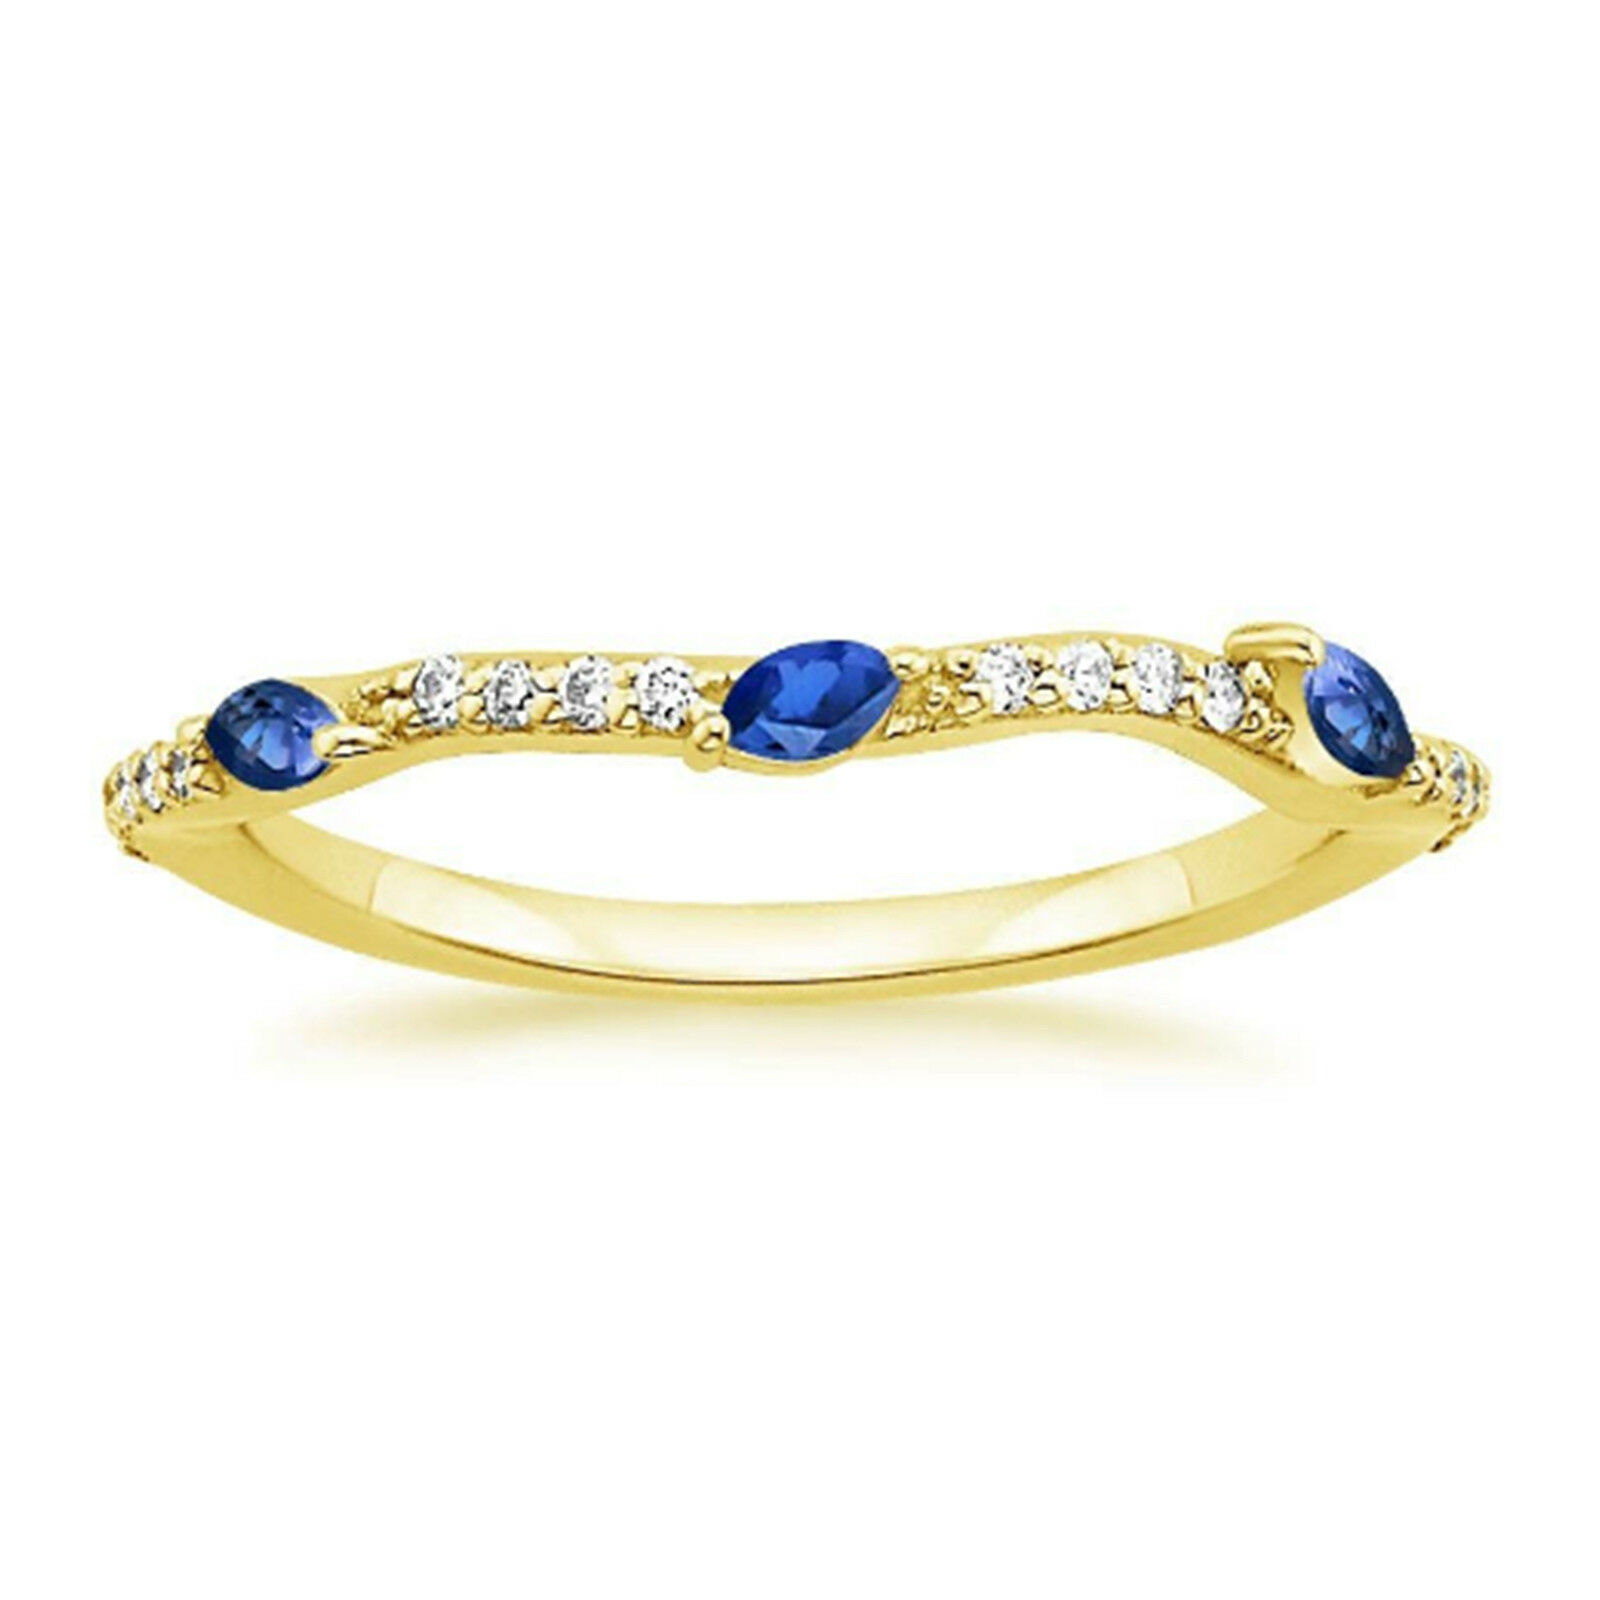 14K Yellow gold Diamond Rings 0.25 Ct Marquise Natural bluee Sapphire Ring Size 4